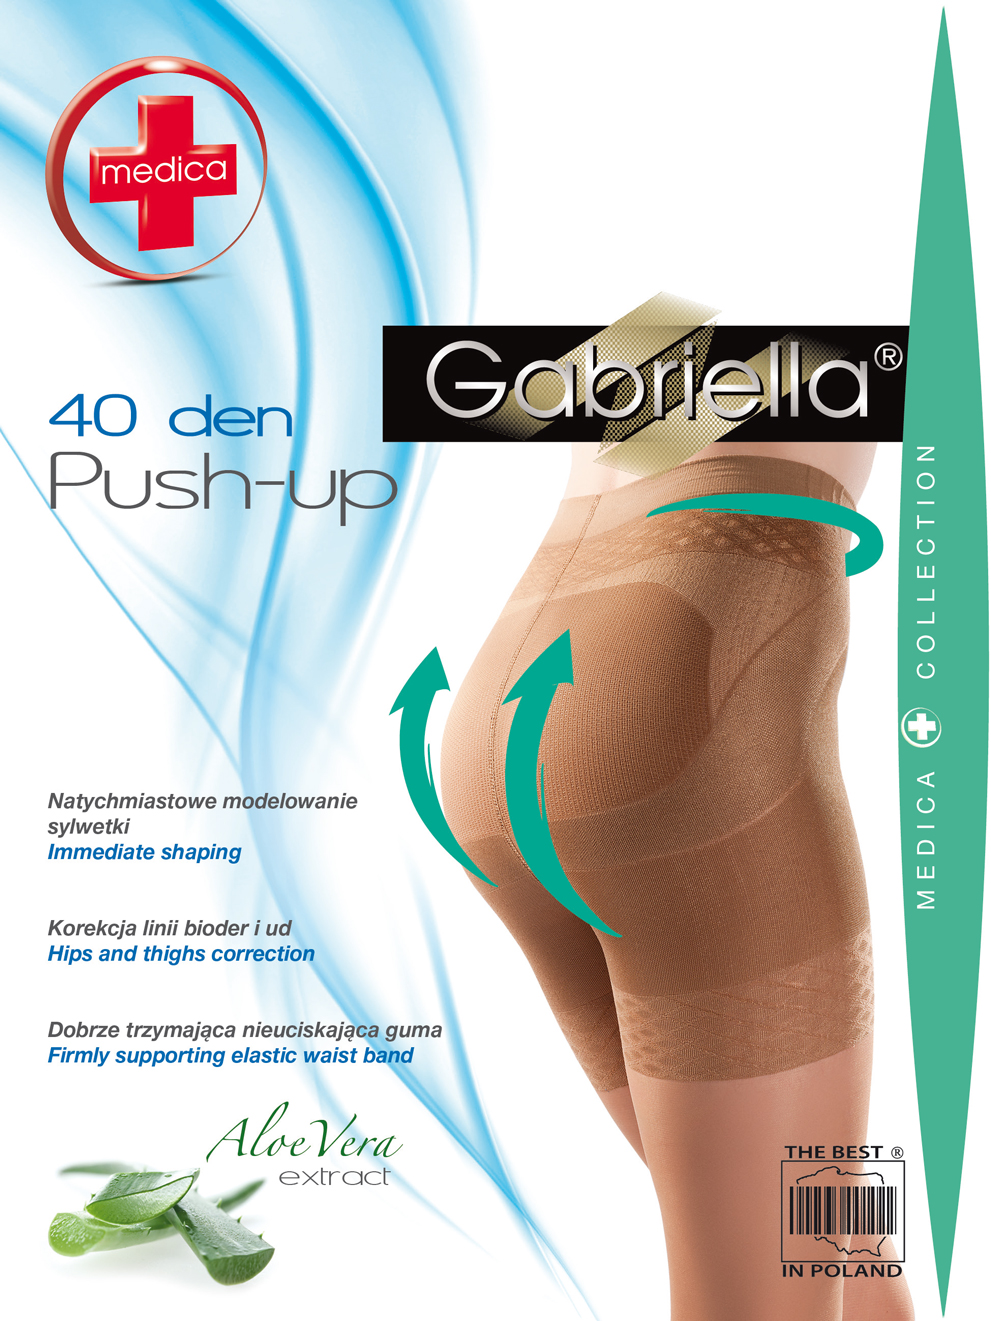 MEDICA PUSH-UP 40 DEN